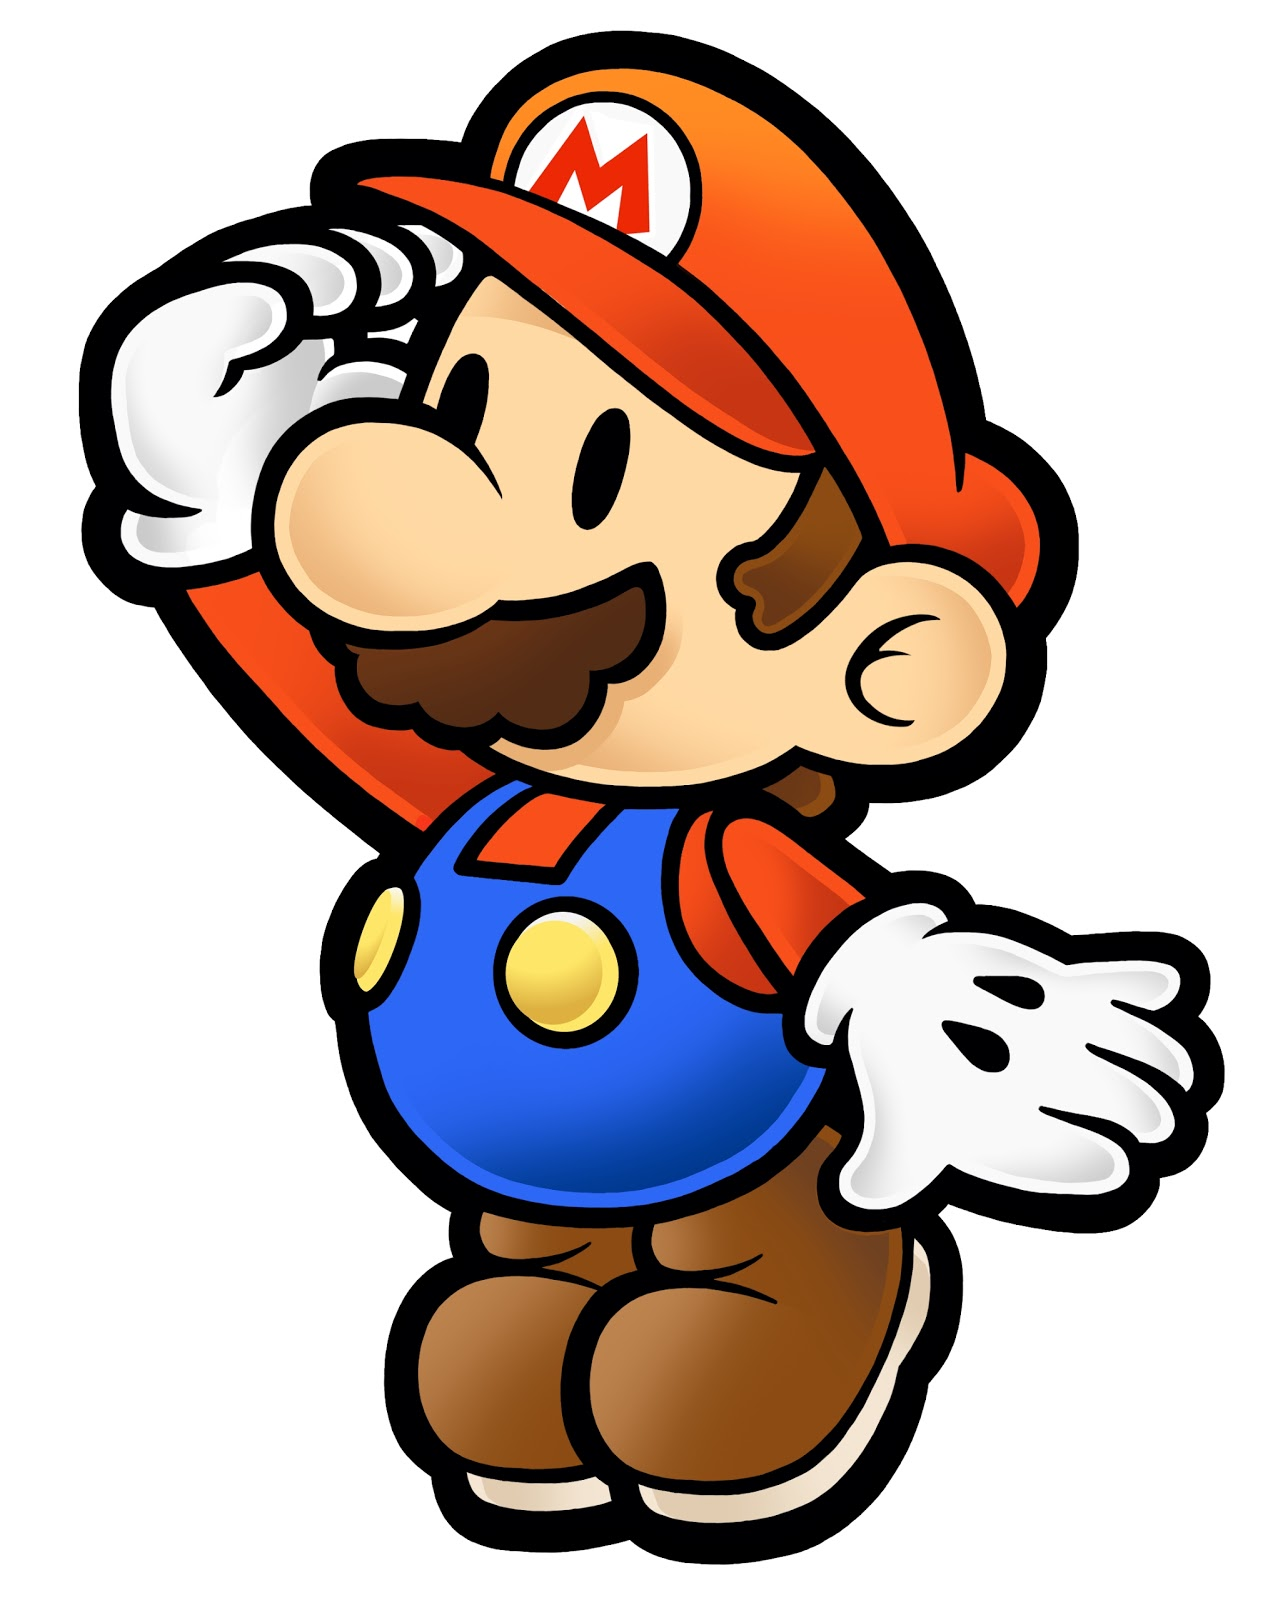 Images of Paper Mario Characters - #SpaceHero